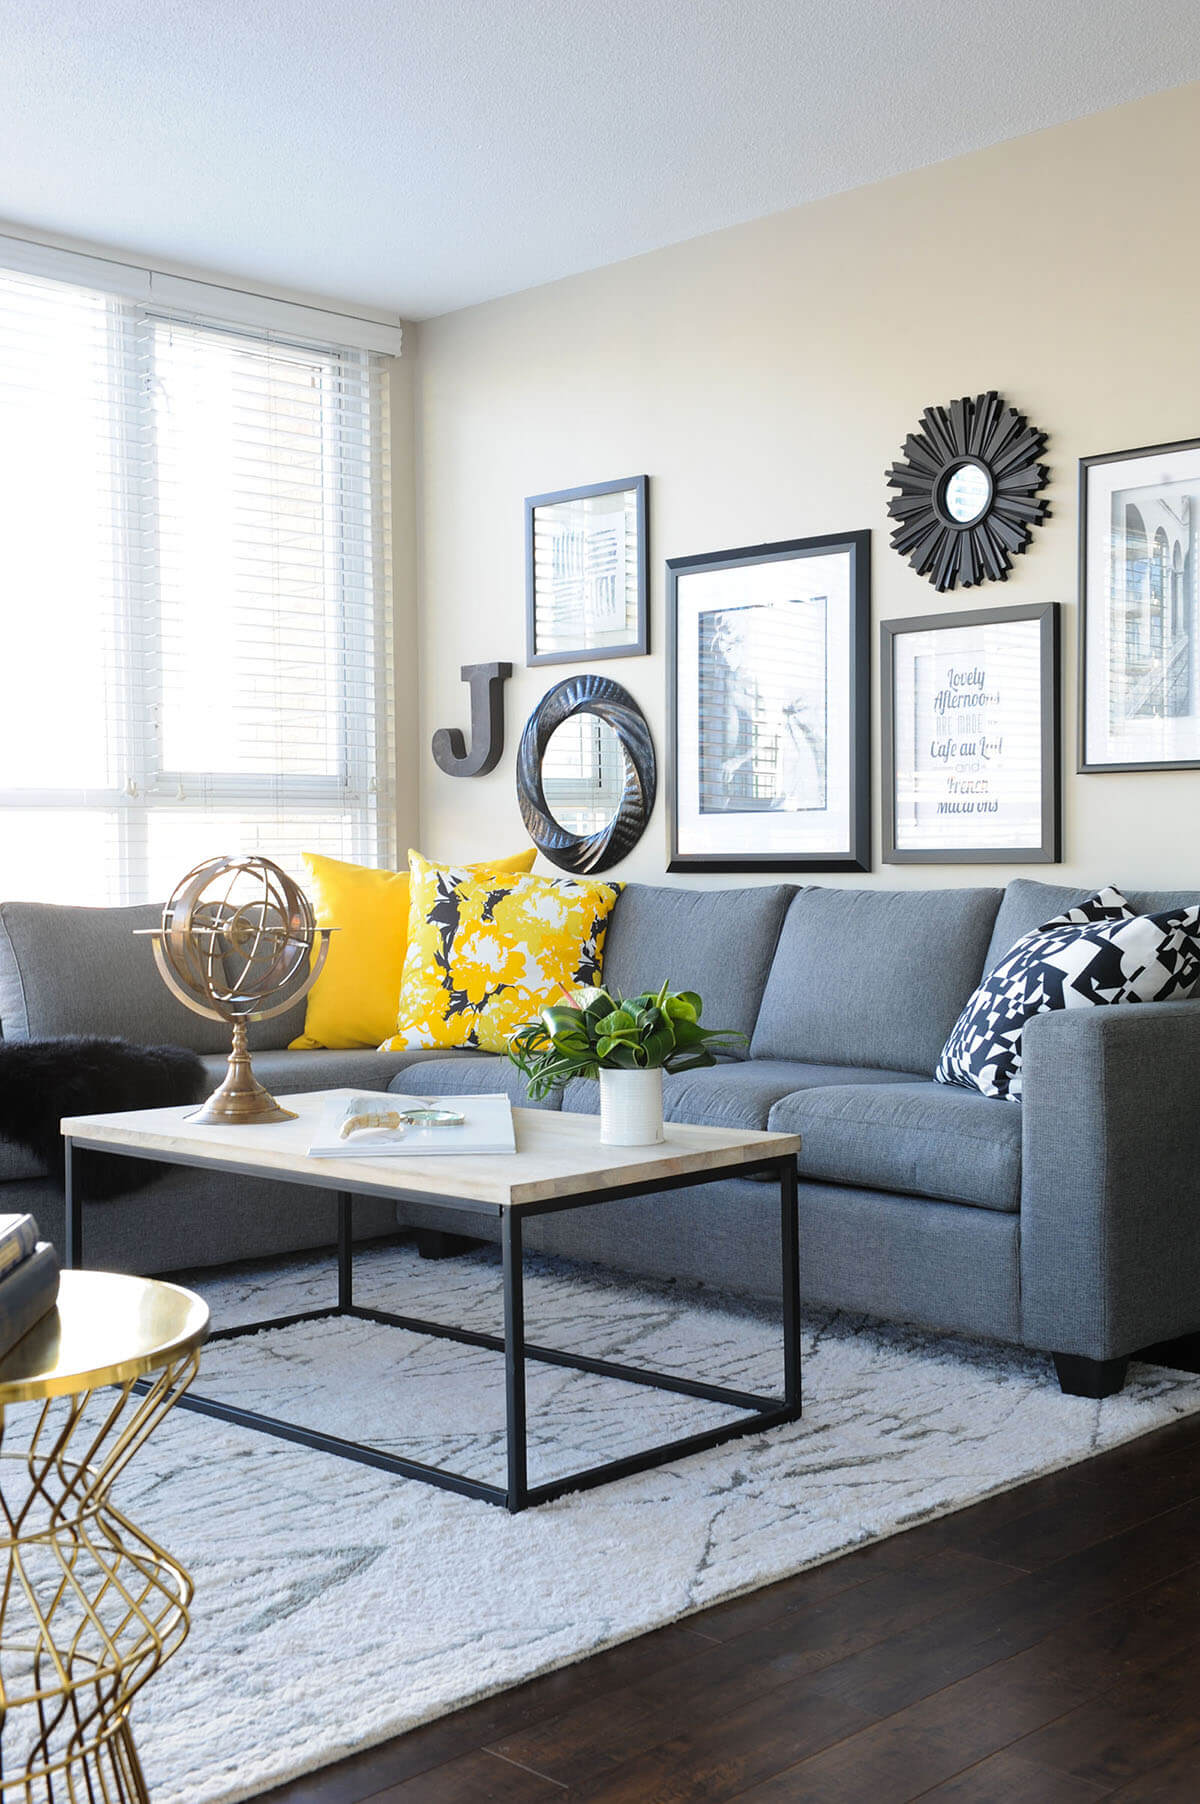 25+ Best Small Living Room Decor and Design Ideas for 2020 on Small Room Ideas  id=81913